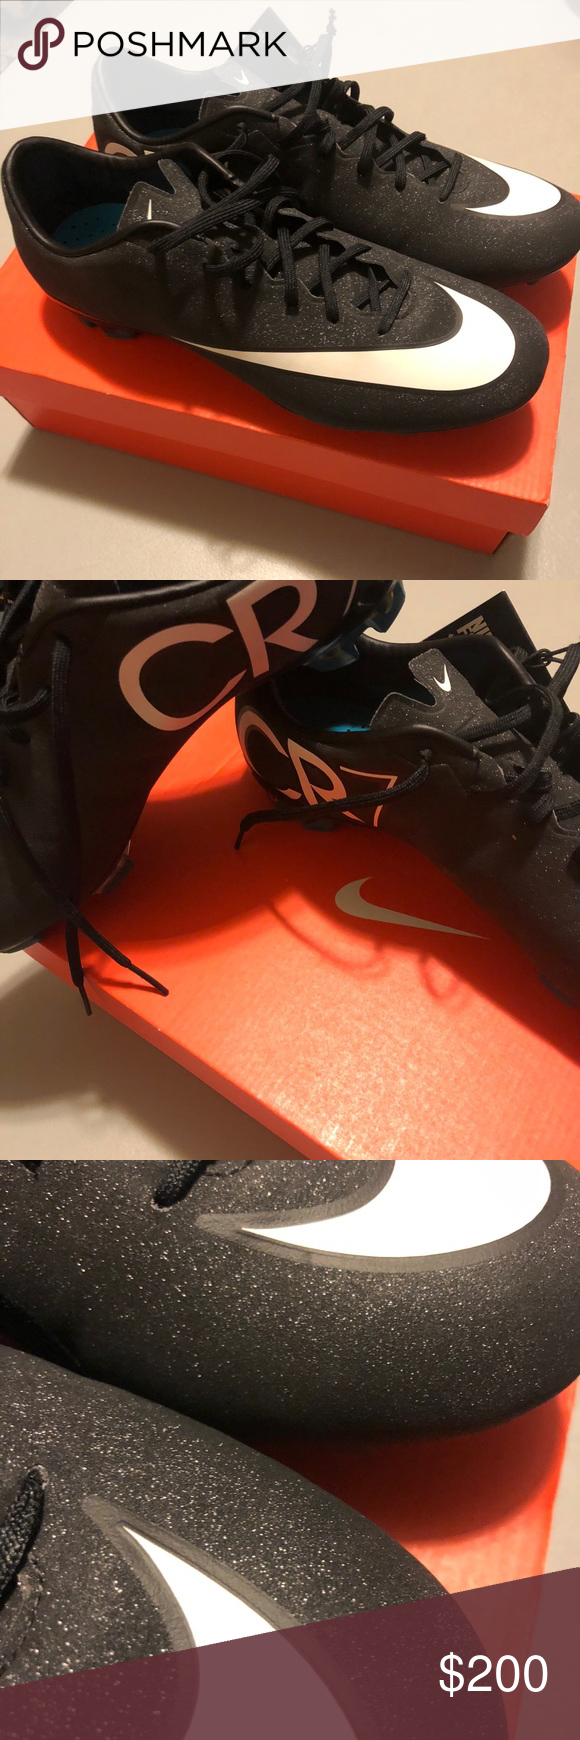 Nike cr7 limited edition Cleats NWT | My Posh Closet | Nike